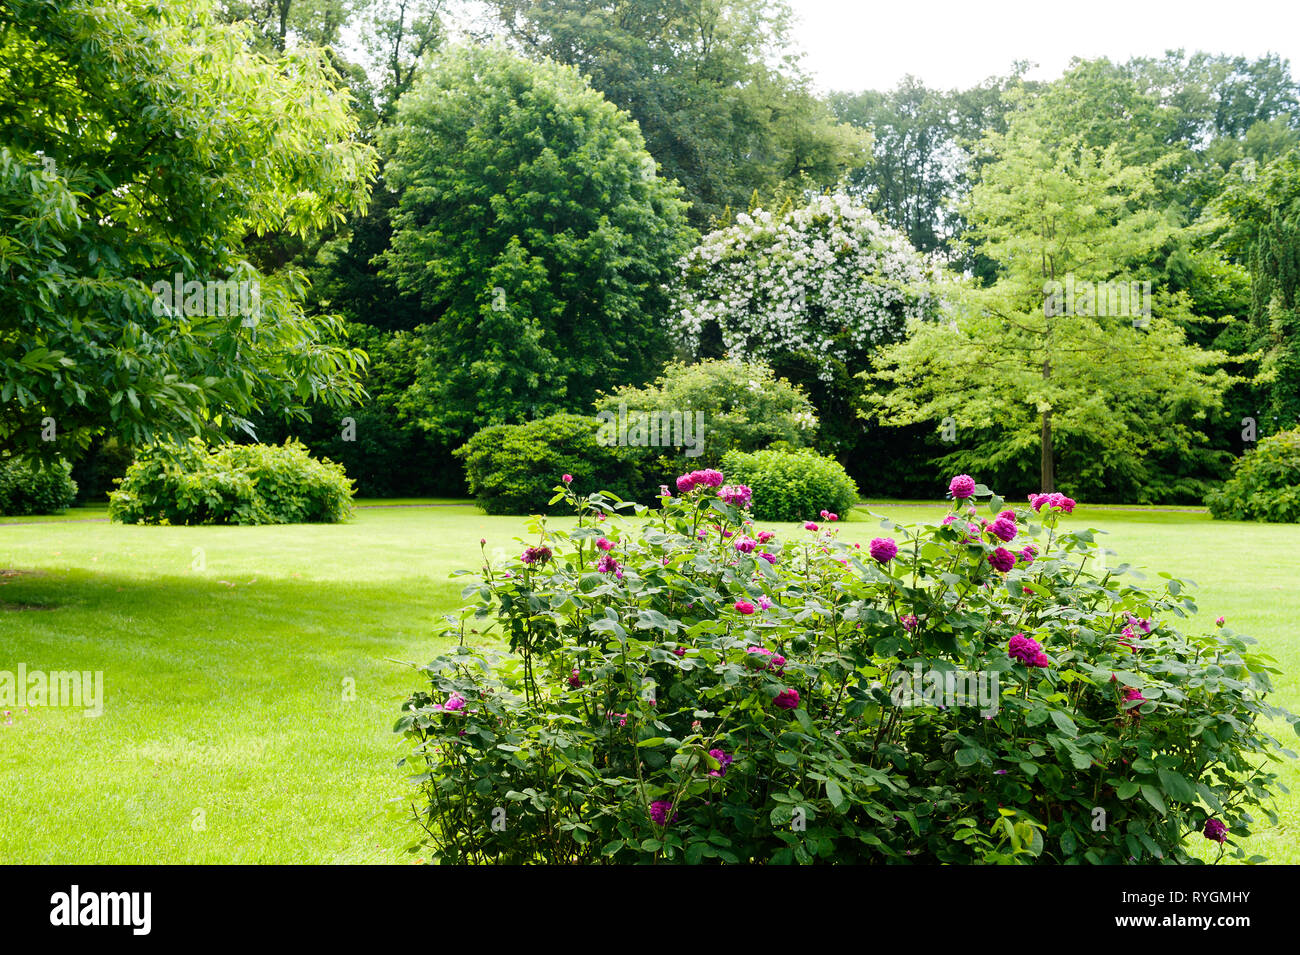 Flowers on lawn by trees Stock Photo